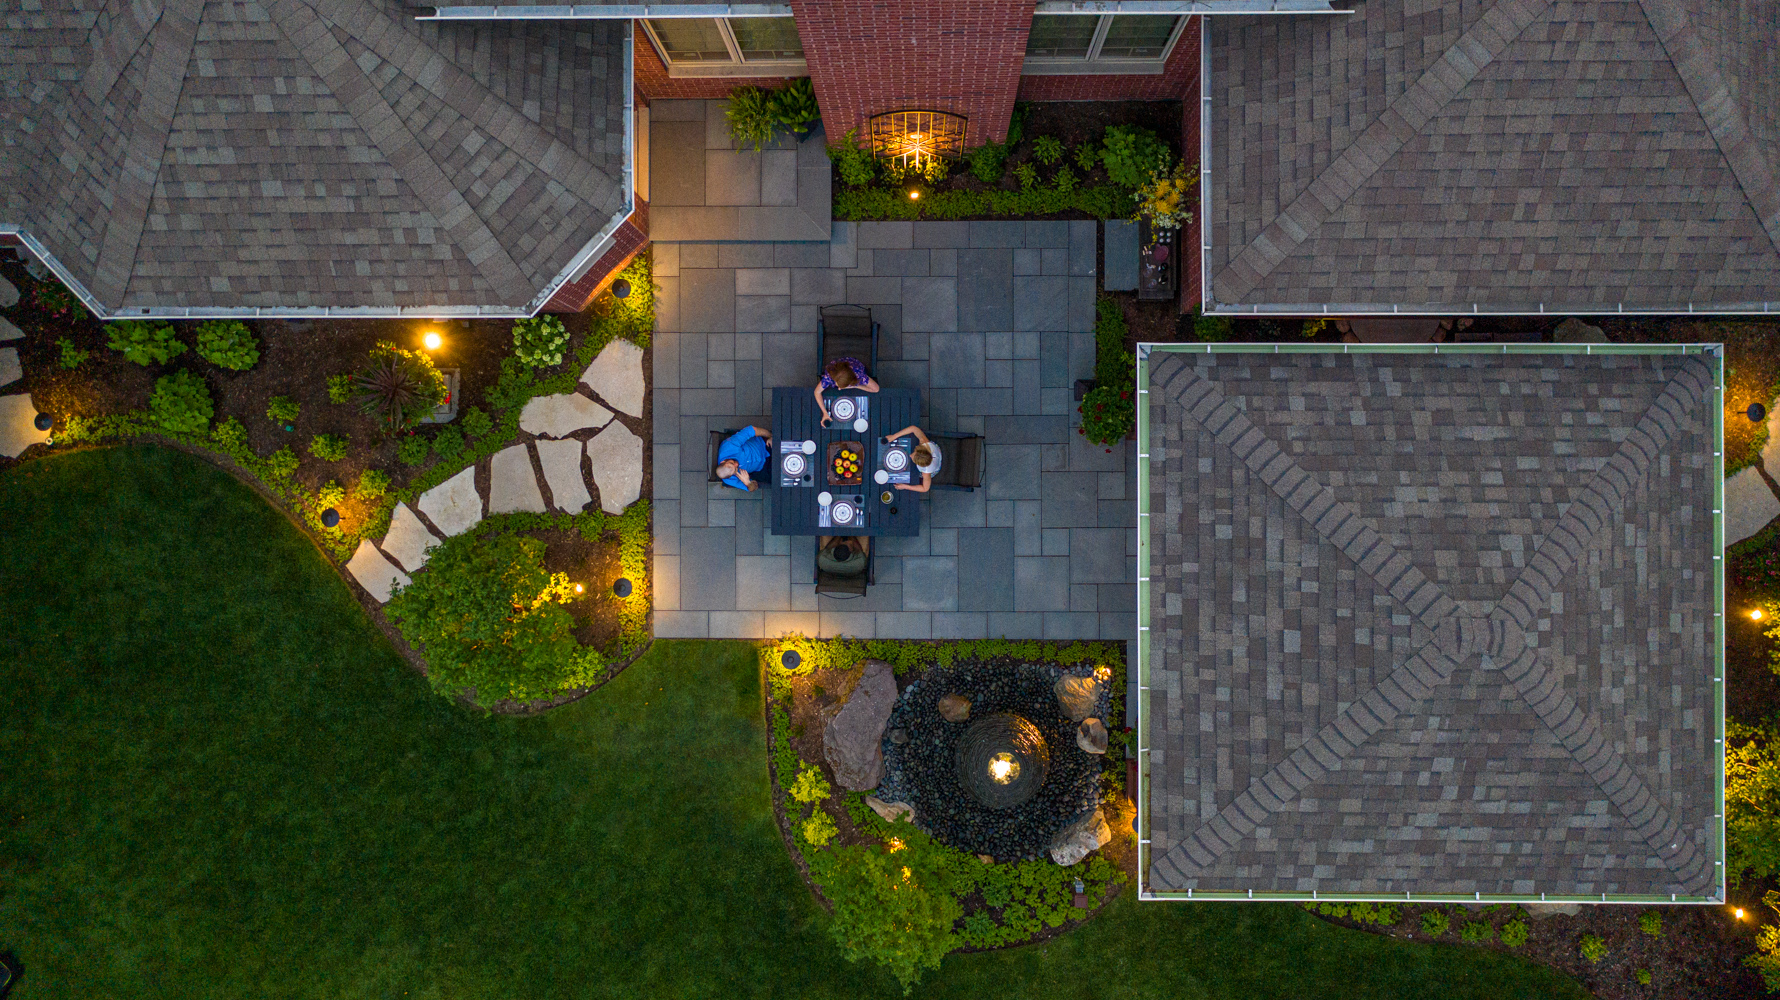 How to Prepare for a Landscape Design Consultation in Greater Chicago